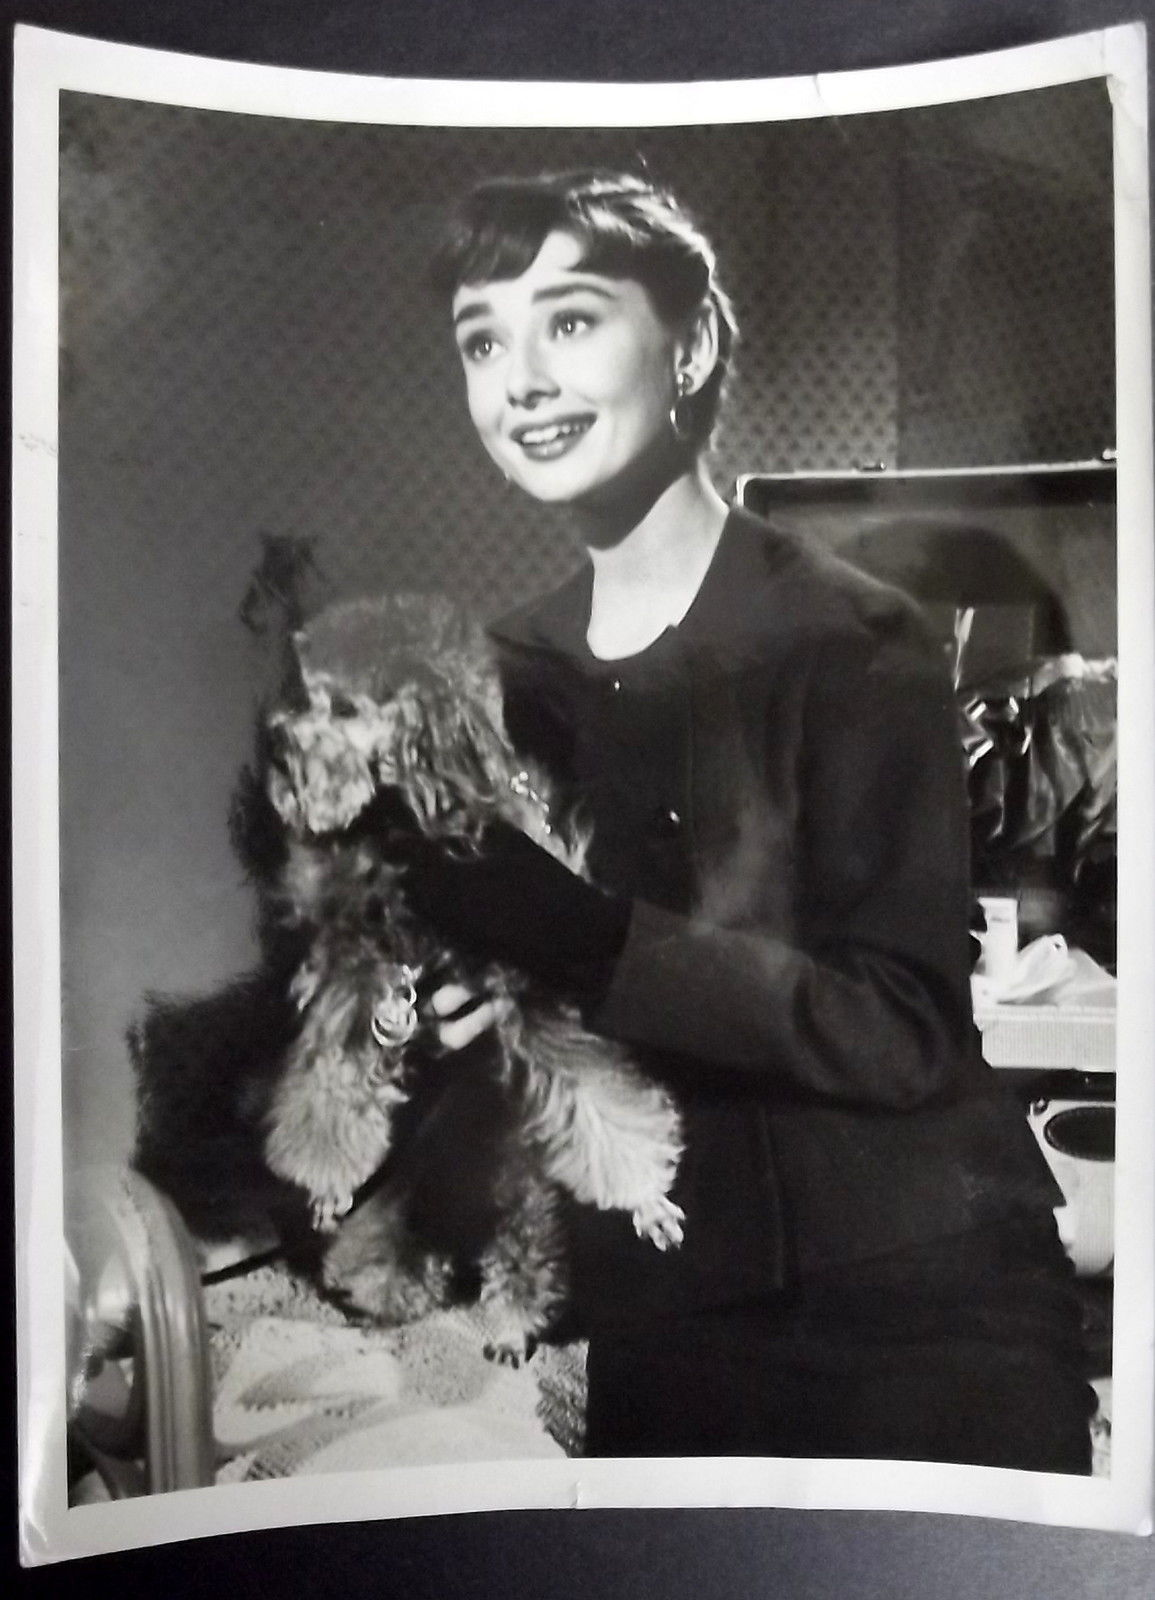 AUDREY HEPBURN (RARE UNSEEN VINTAGE PHOTO) CLASSIC ICONIC ACTRESS (WOW)